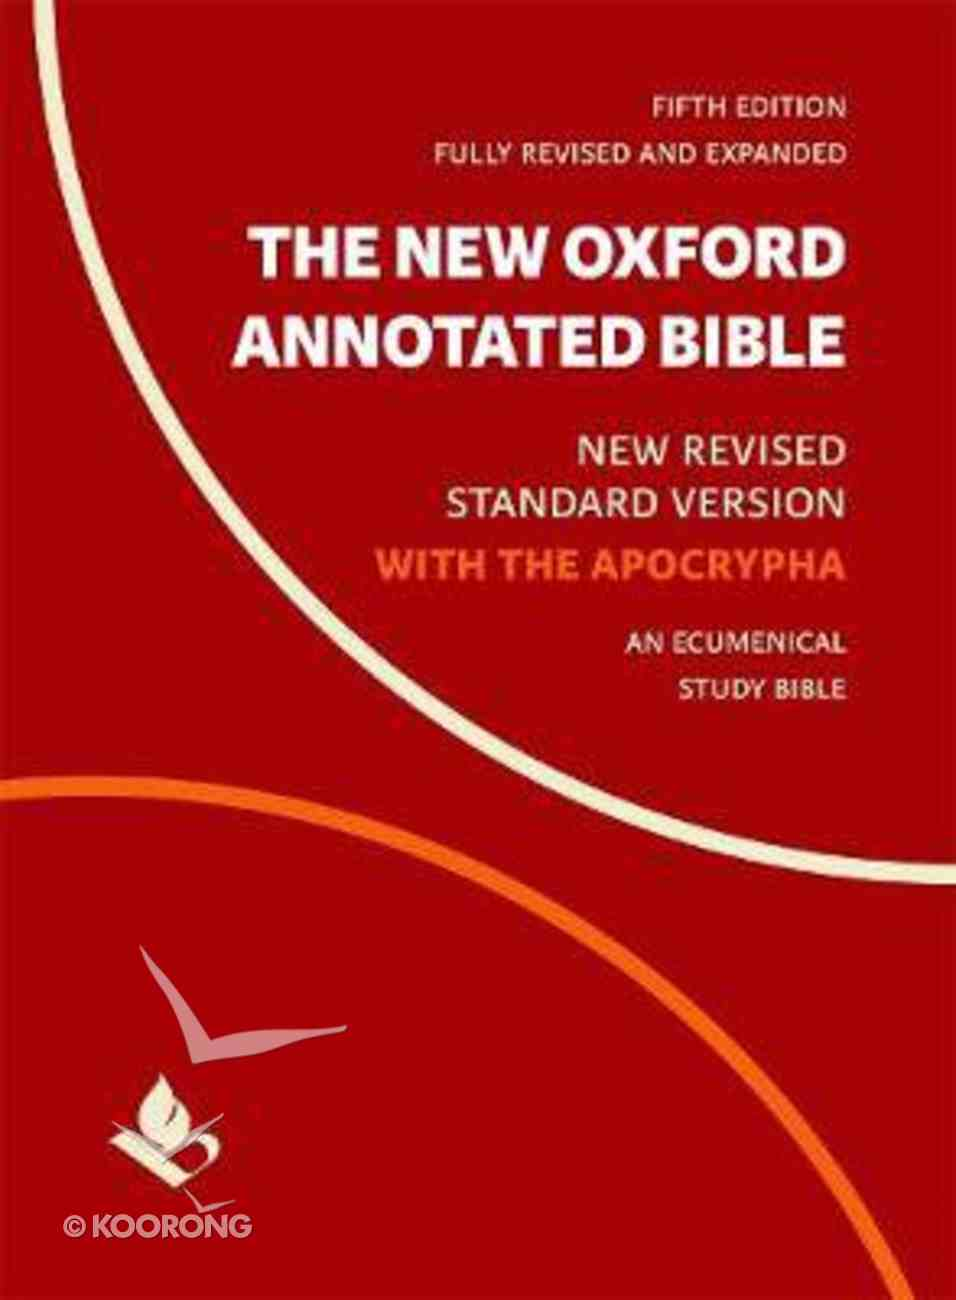 The NRSV New Oxford Annotated Bible With Apocrypha (5th Edition) Hardback